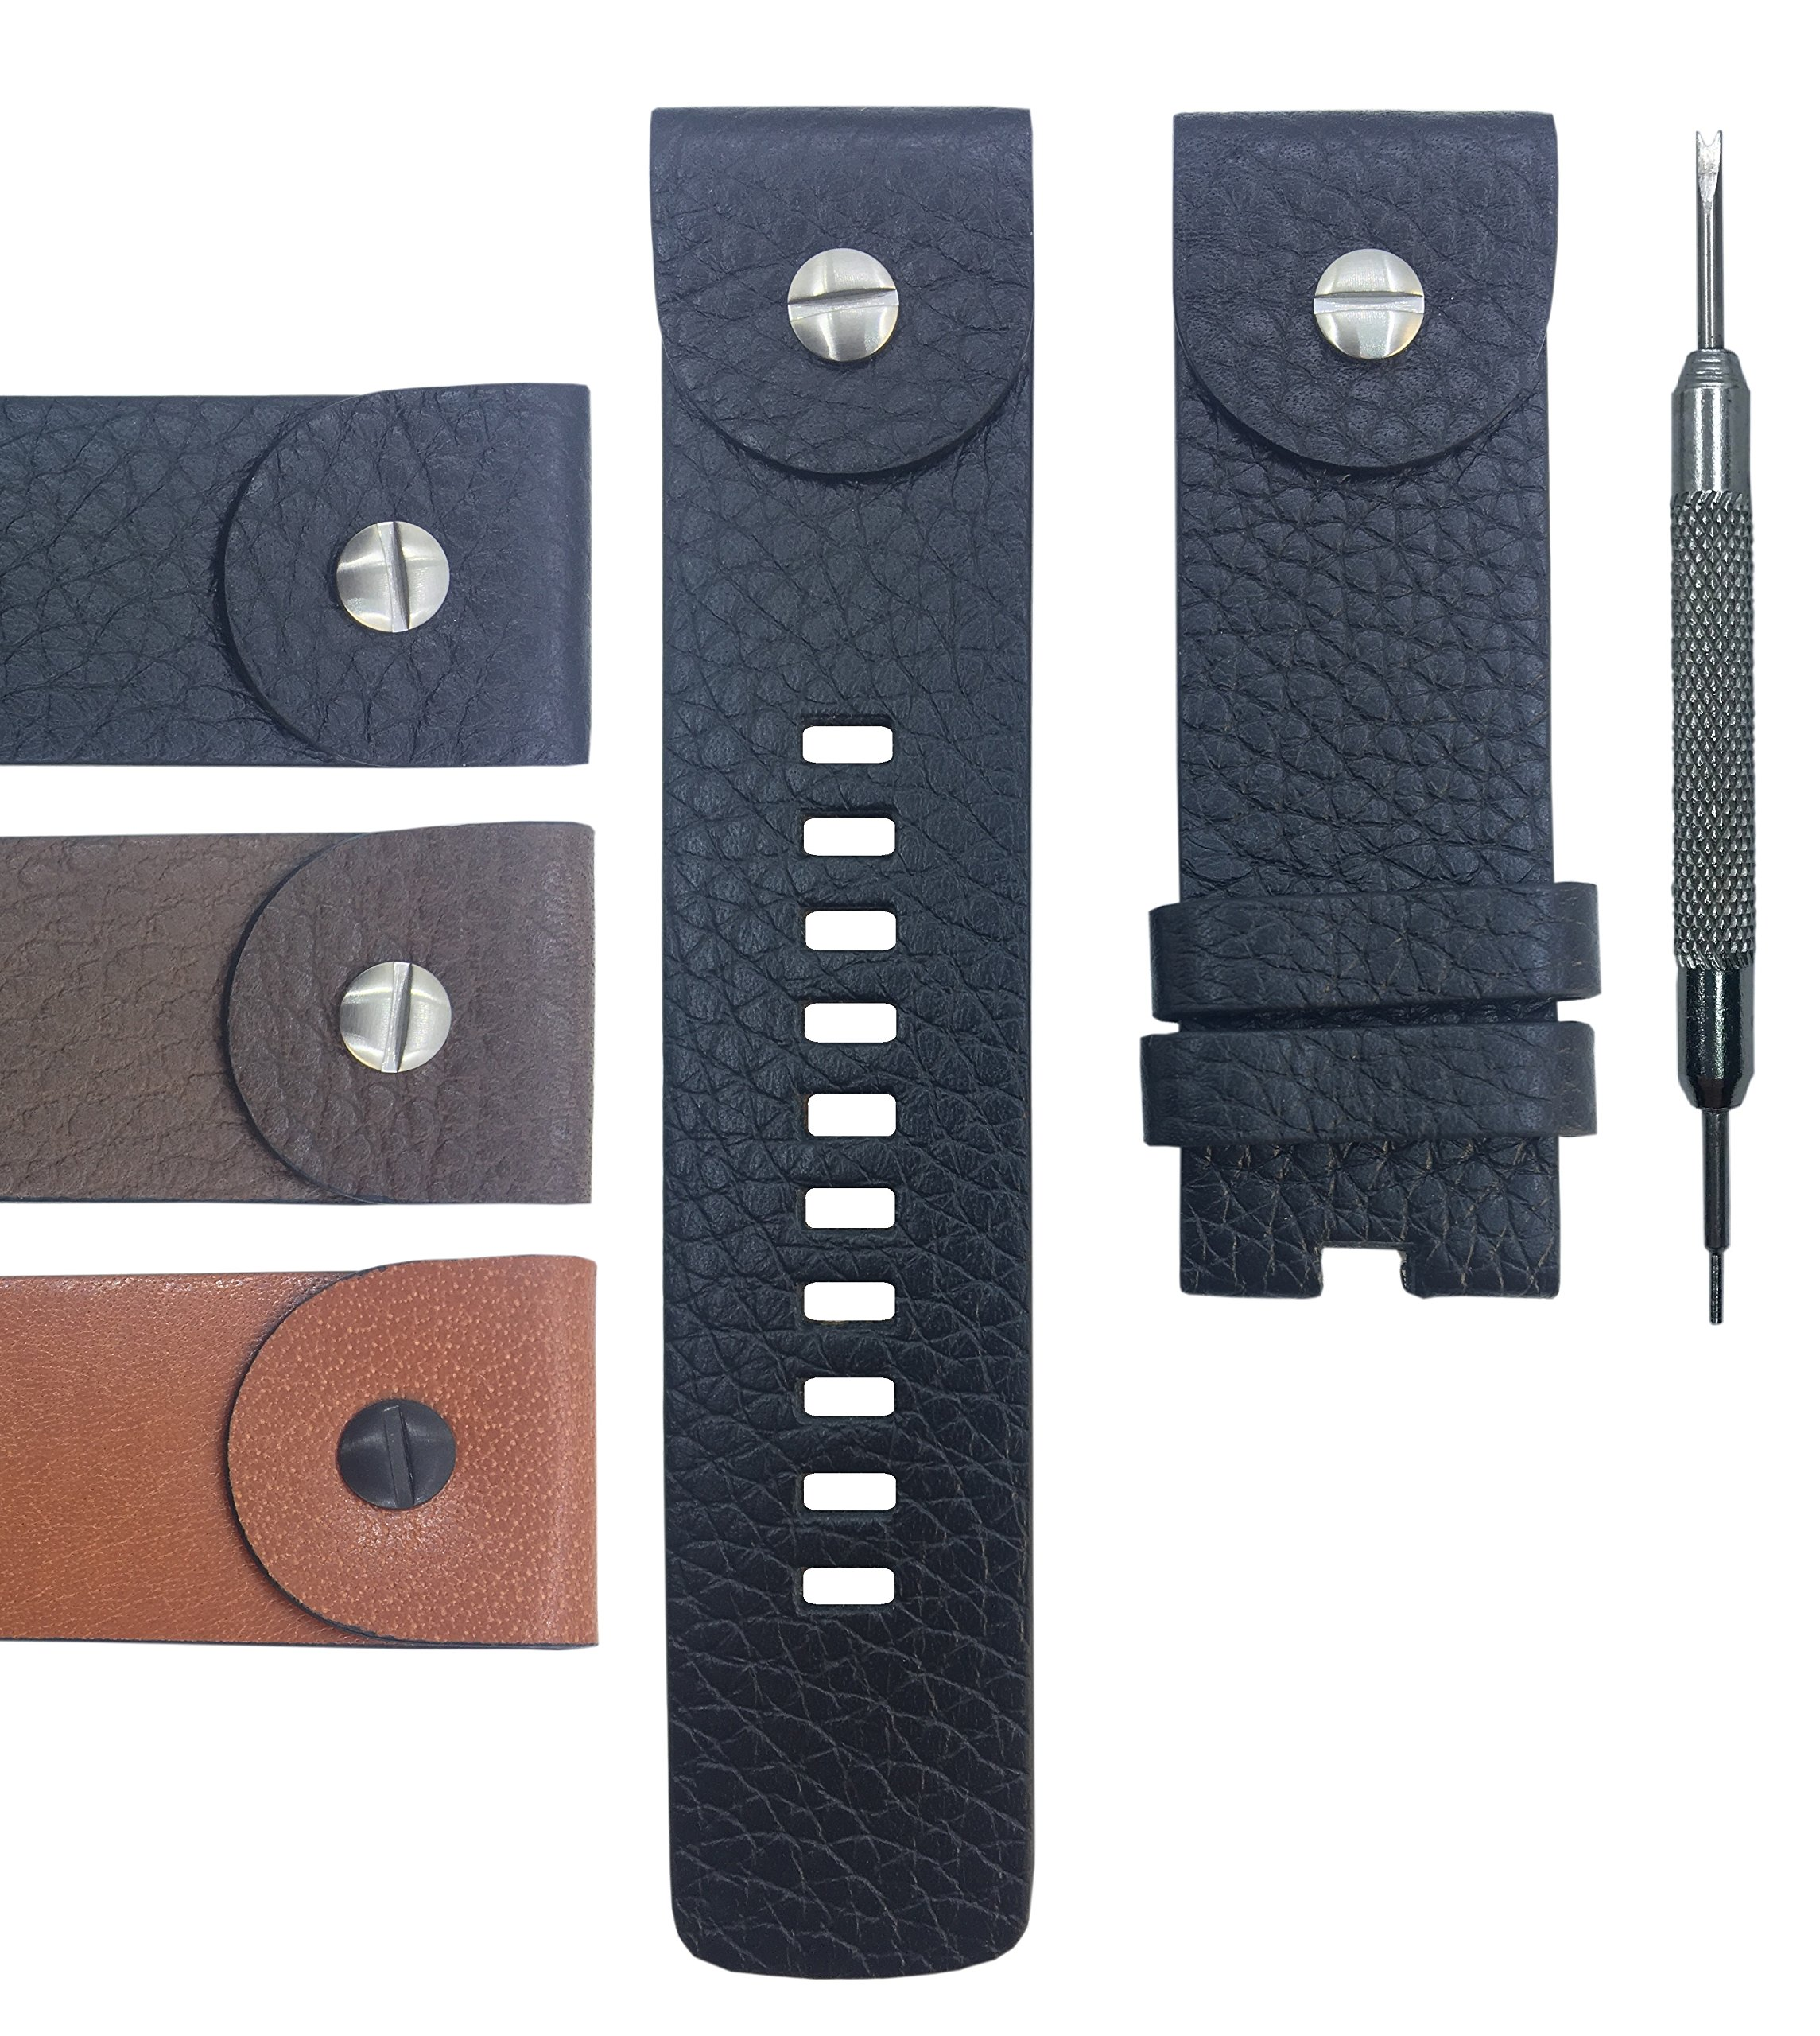 24mm Genuine Leather Watch Band Strap For DZ7256 DZ7267 DZ7291 DZ7257 DZ7270 DZ7293 DZ1578 DZ7363 DZ7264 DZ7258 DZ1225 - Free Spring Bar Tool (Black)